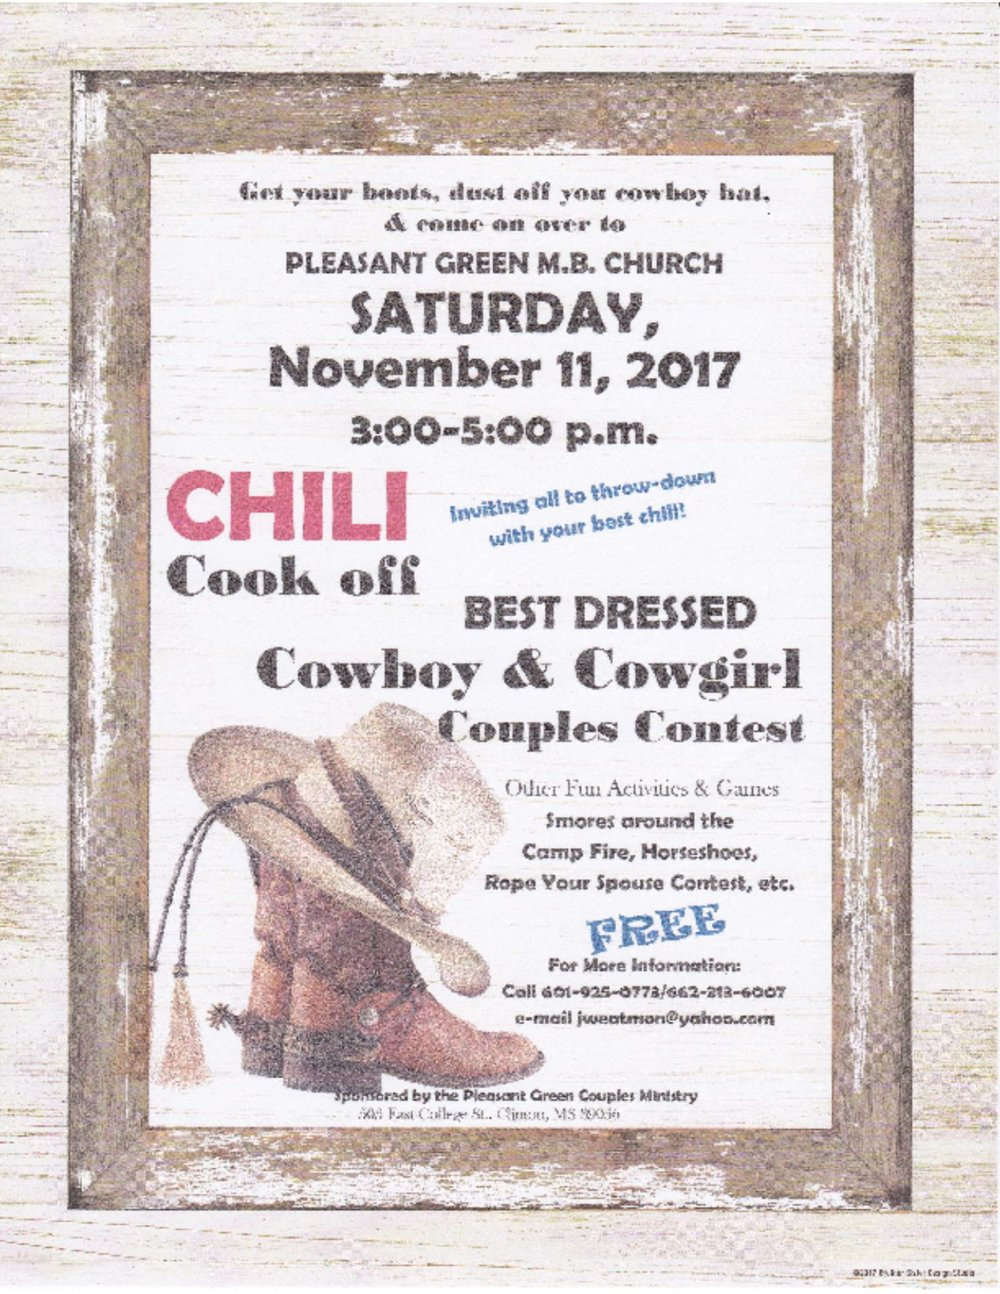 Couples Ministry Cowboy and Cowgirl Flyer 2017.jpg